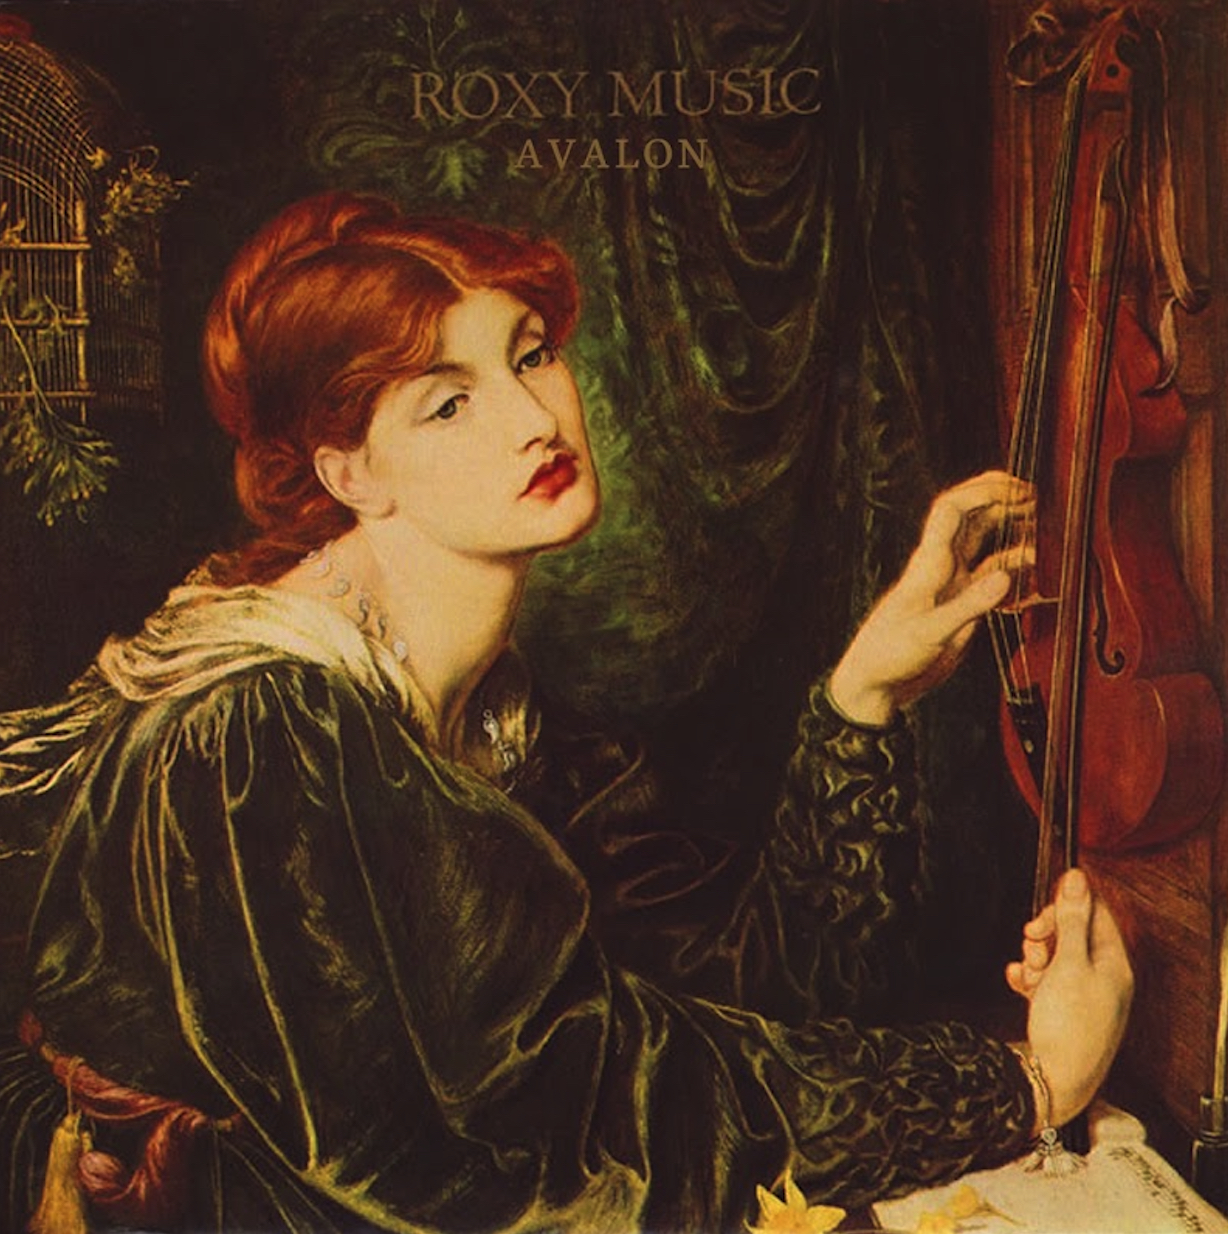 avalon mature singles Avalon (roxy music album) singles from avalon more than this released: april 1982 beautiful set of songs represents a mature peak.